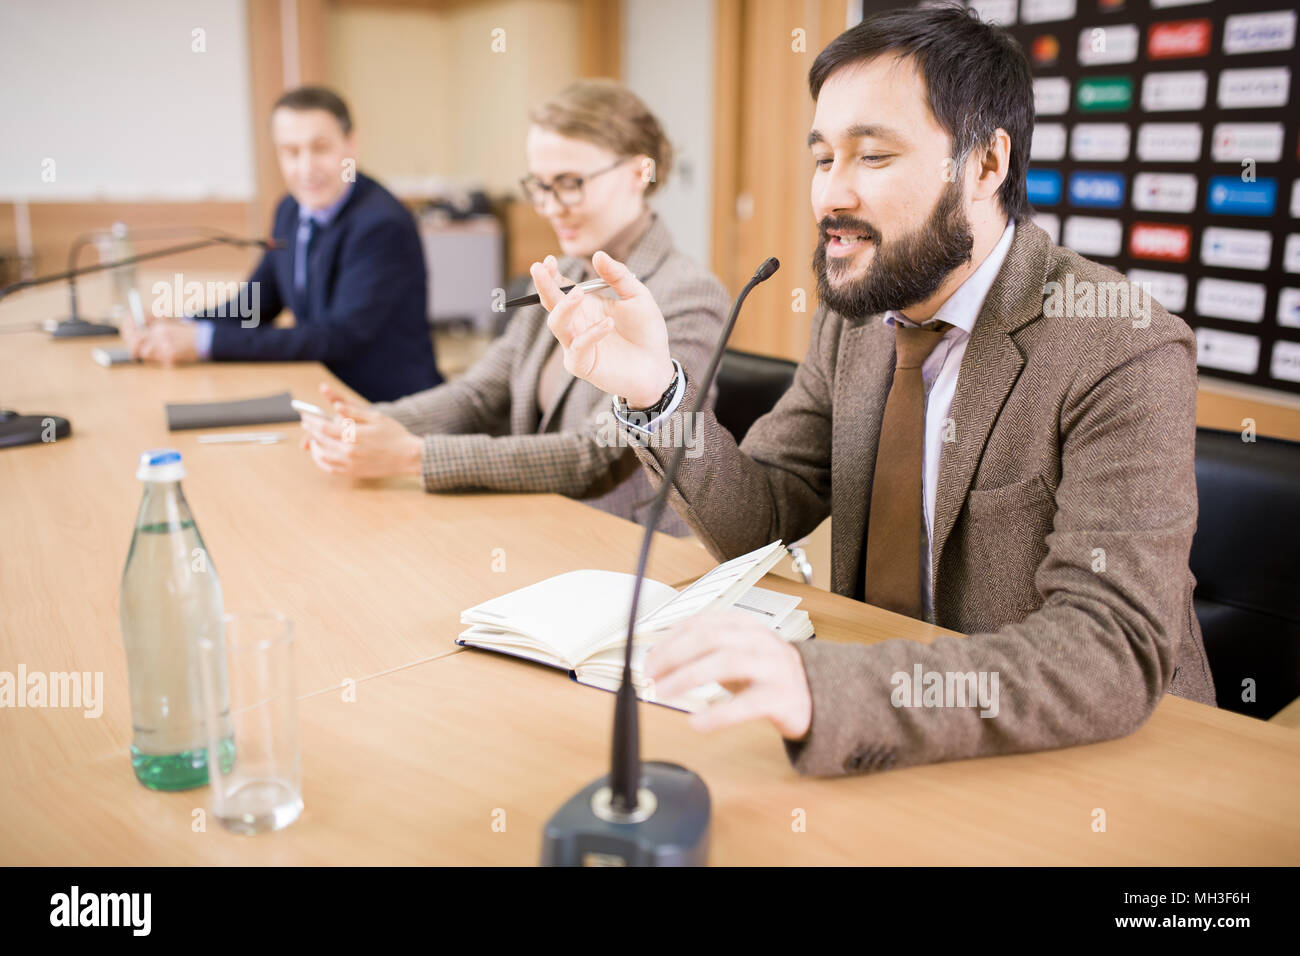 Business People at Press Conference - Stock Image